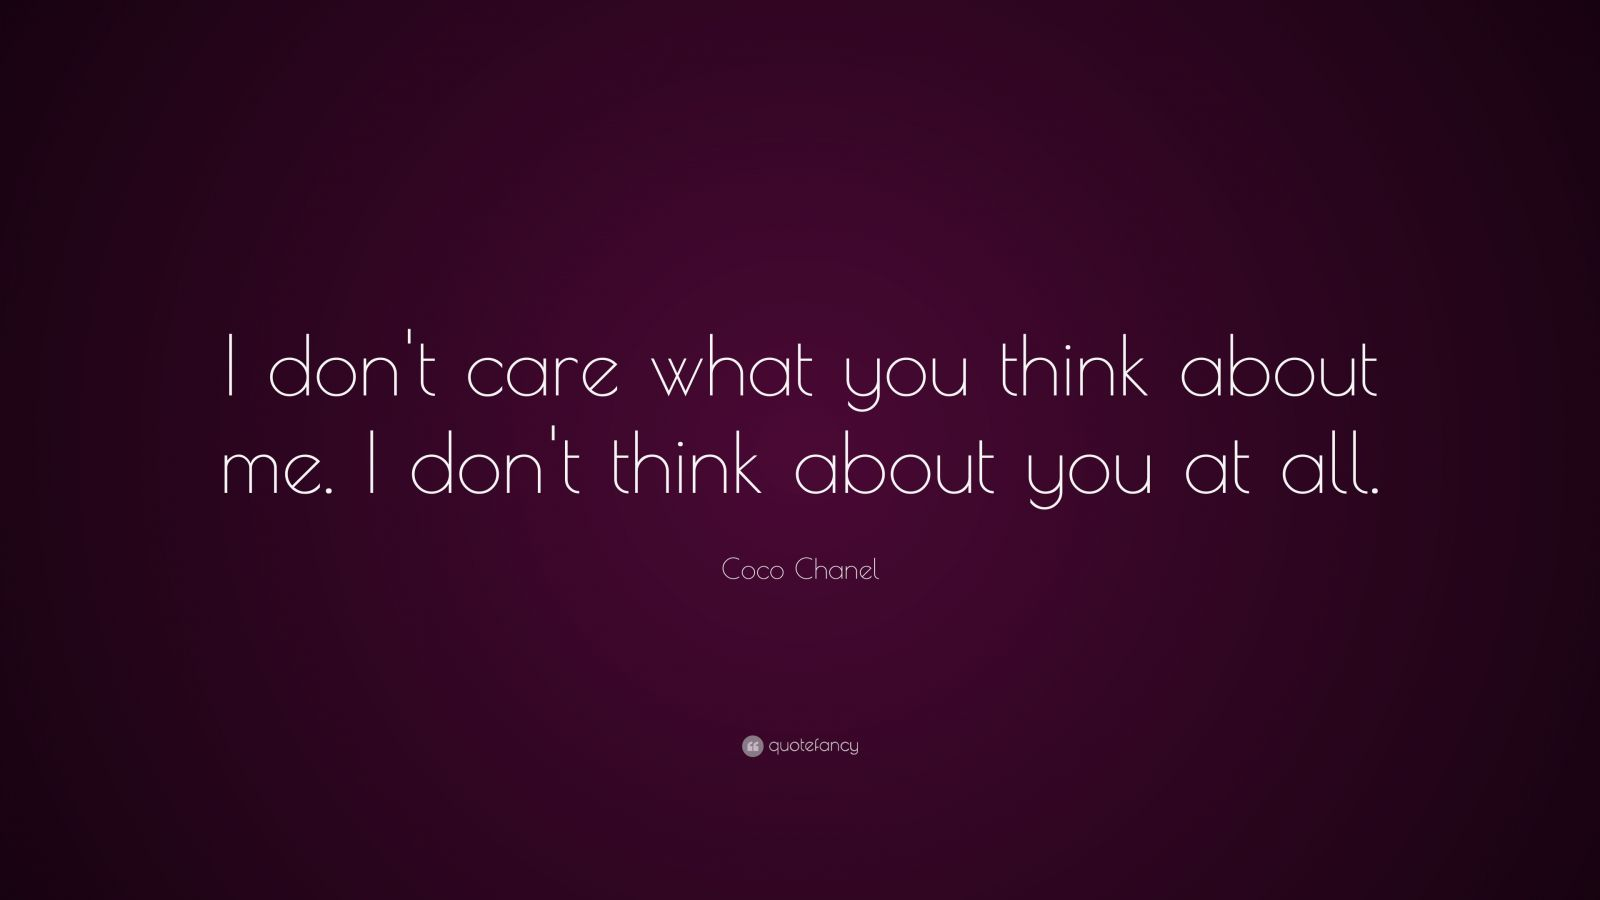 Osho Hd Wallpaper Coco Chanel Quote I Don T Care What You Think About Me